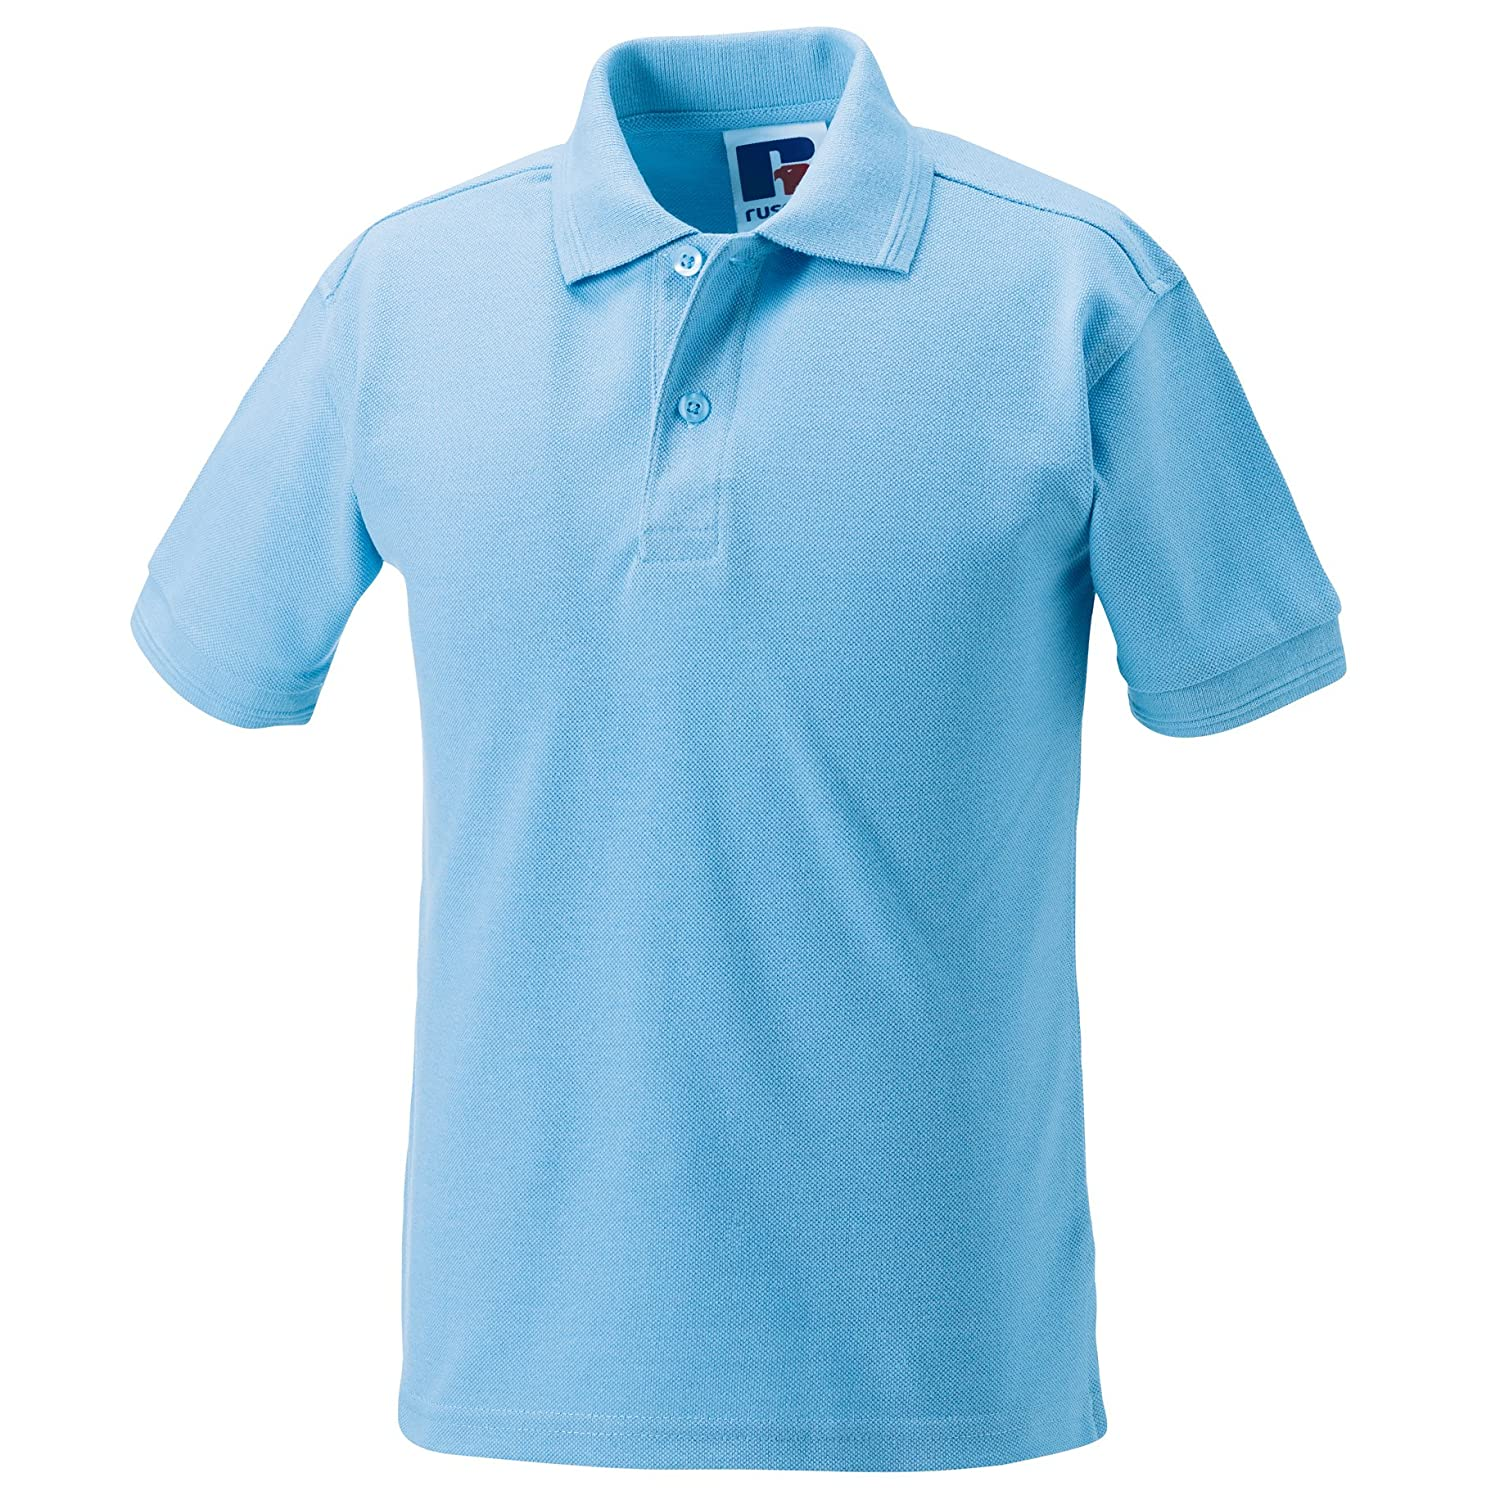 Jerzees Schoolgear Childrens Hardwearing Polo Shirt Jerzees Schoolwear